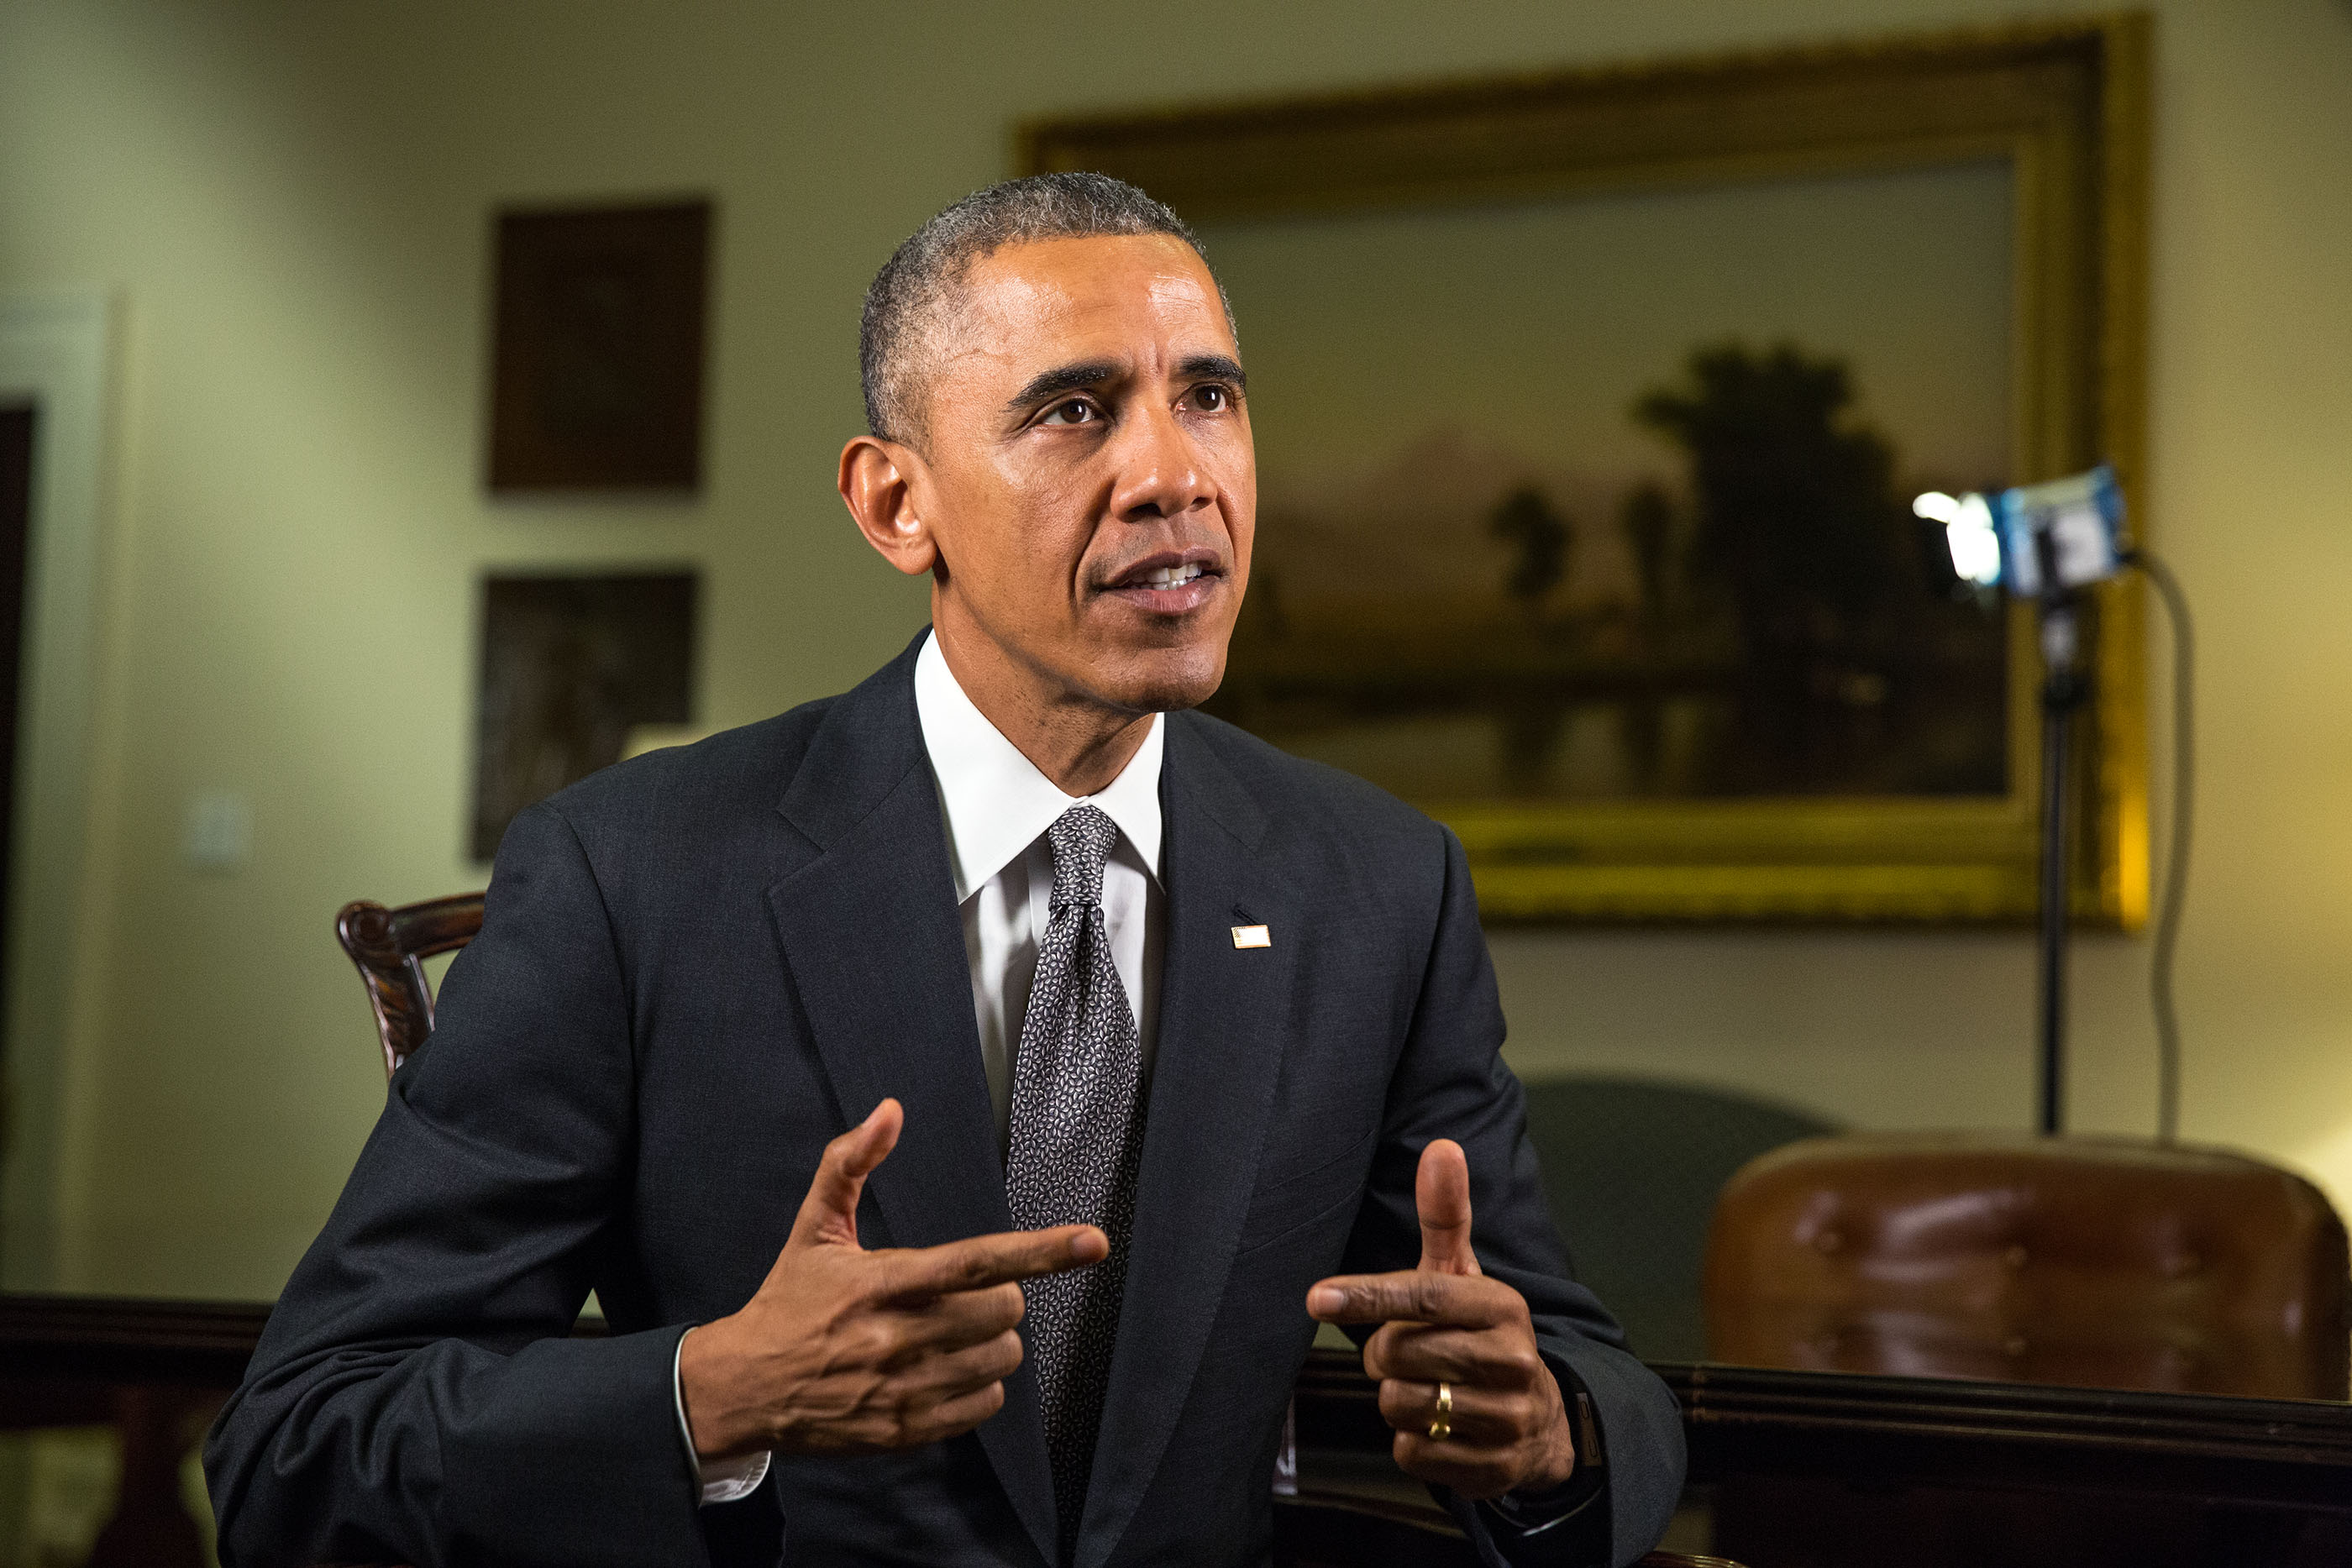 President Barack Obama tapes the Weekly Address in the Roosevelt Room of the White House, April 16, 2015